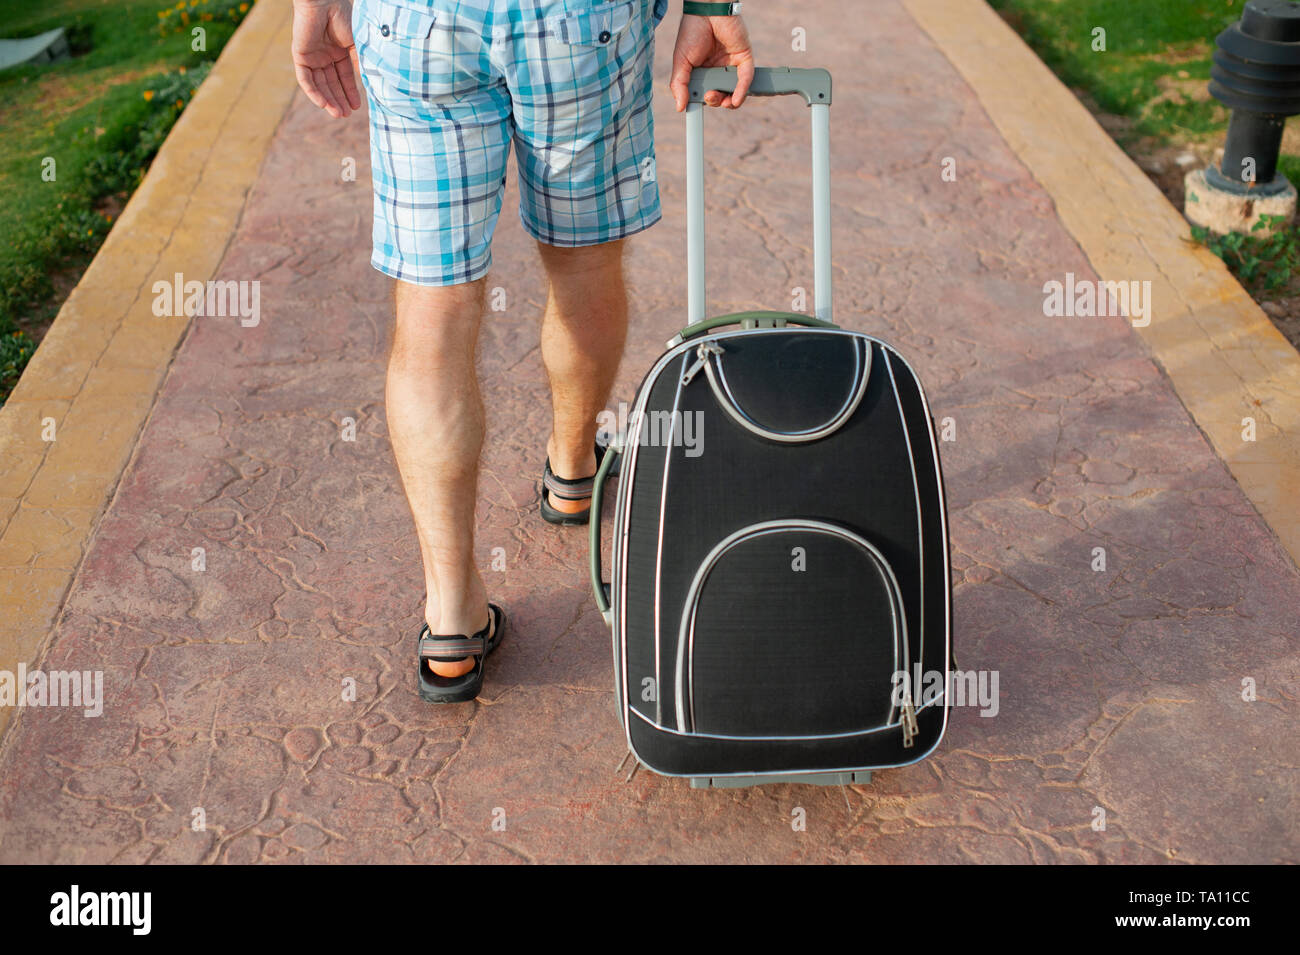 Young man pulling suitcase on road in summer park. Travelling guy wearing smart shorts walking away with his luggage - Stock Image